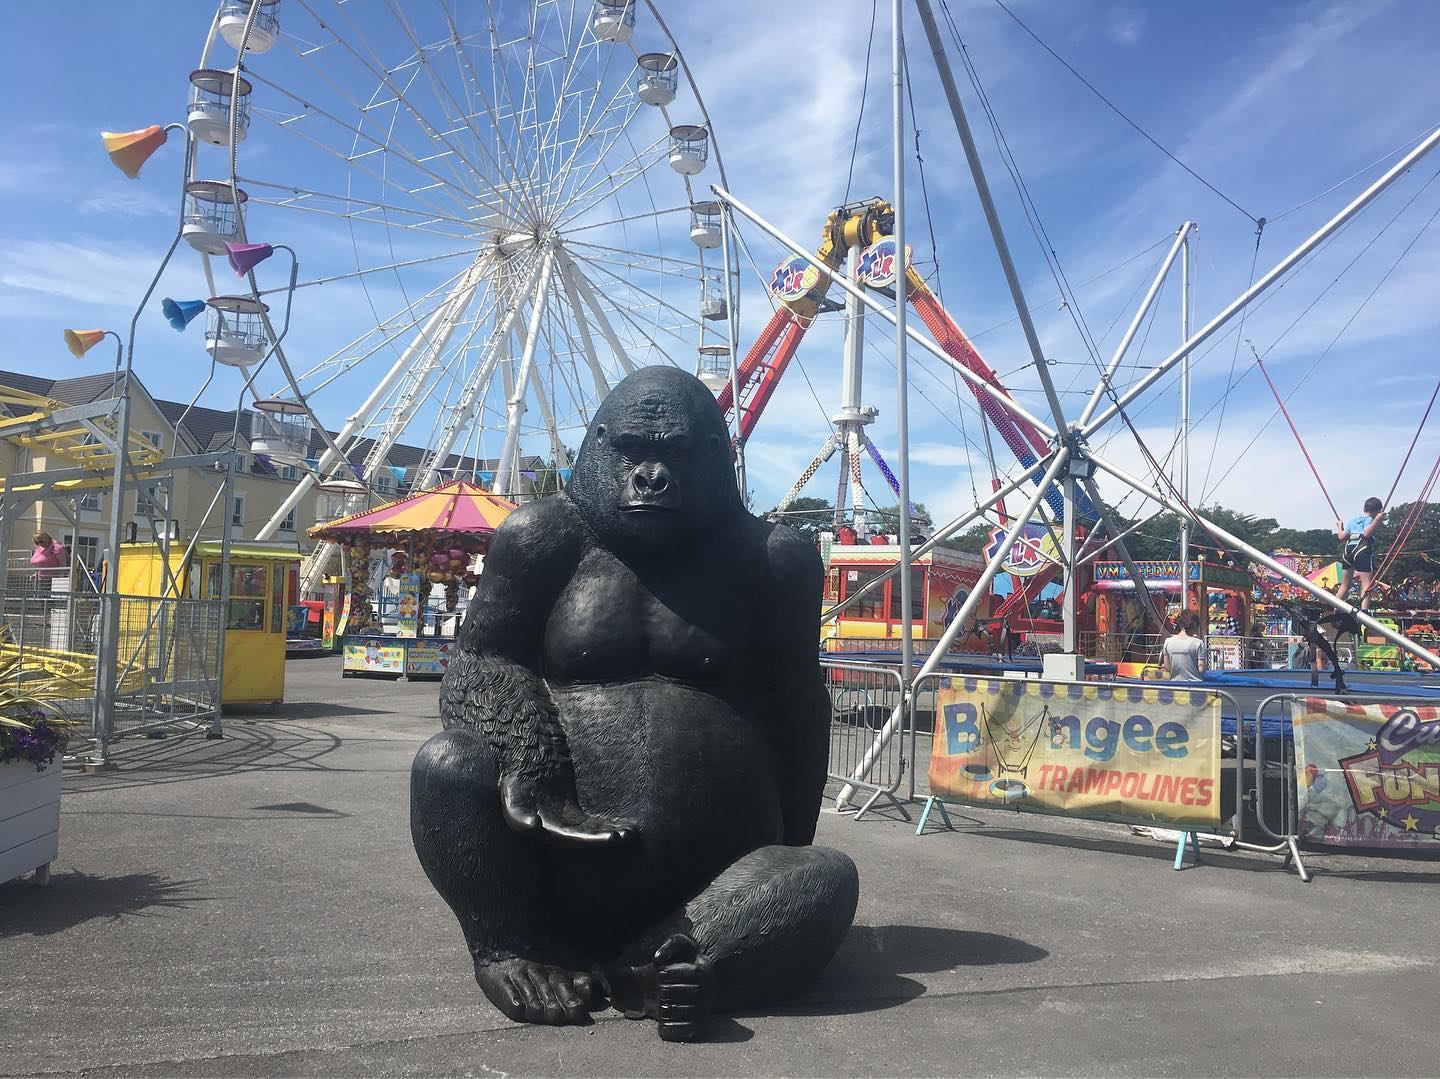 Curry's Fun Park in Galway - Visit Galway